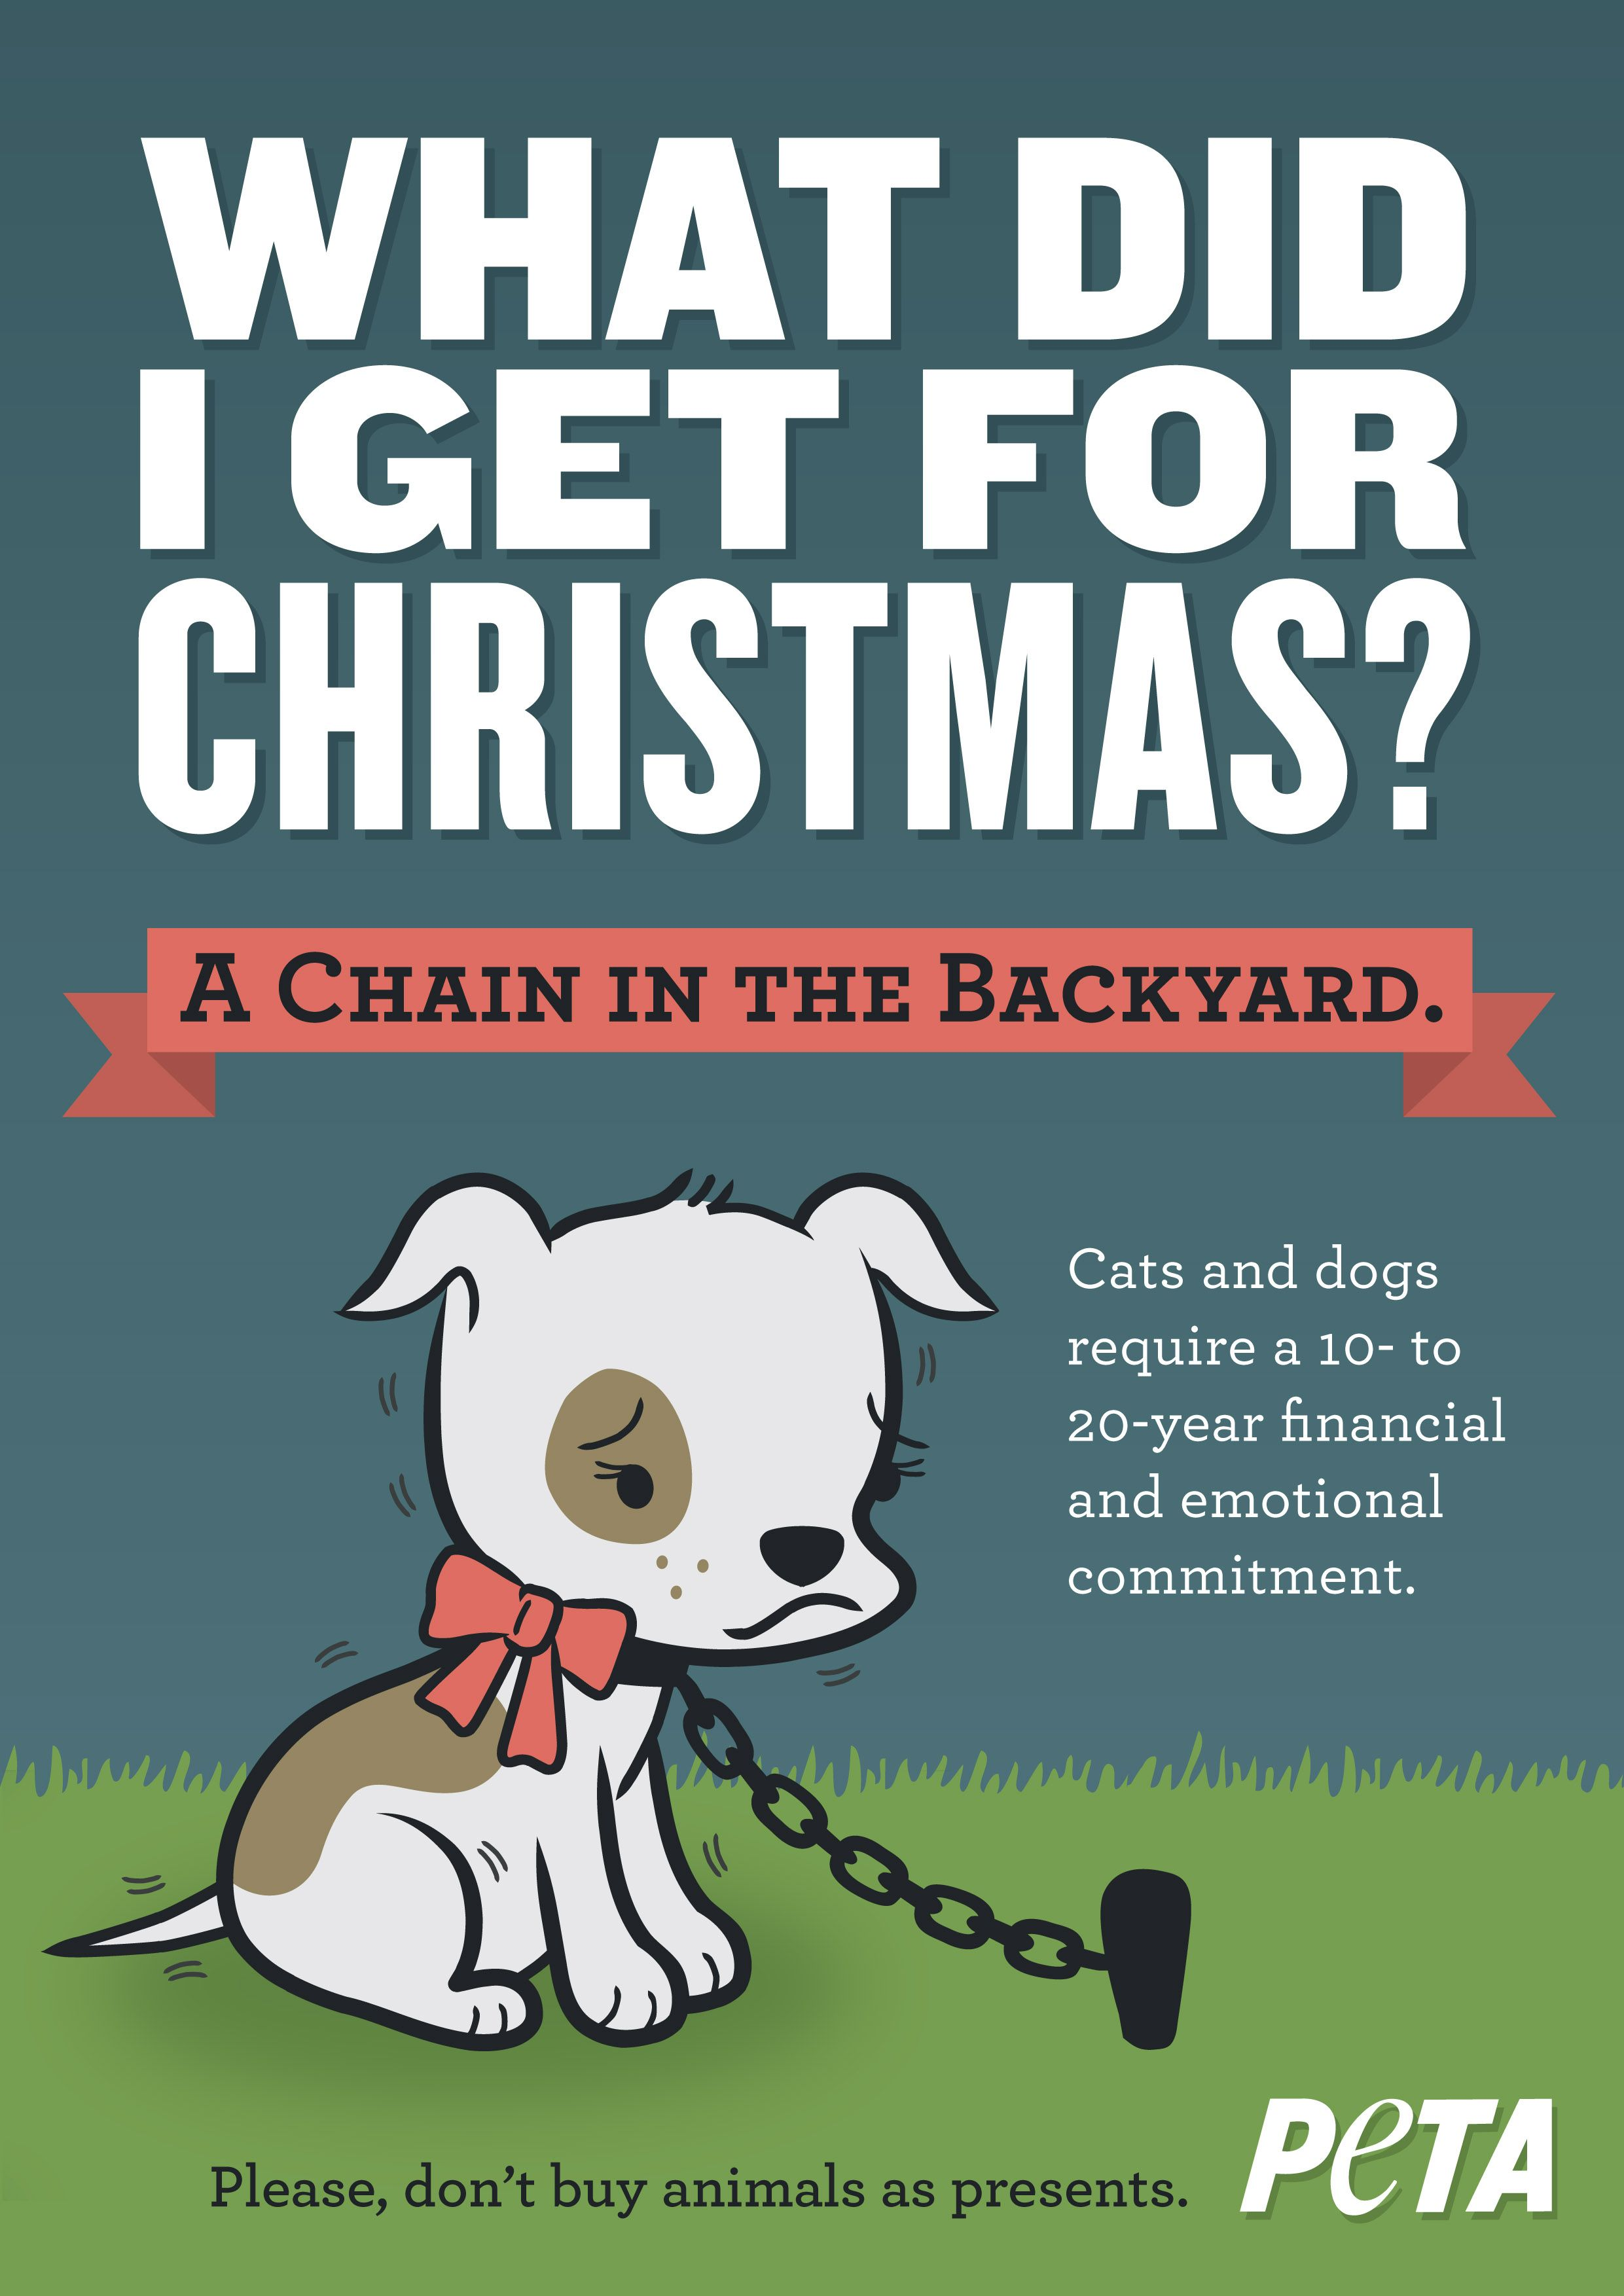 5 Reasons To Never Give A Puppy Or Kitten As A Christmas Gift Animals Animal Companions Puppies